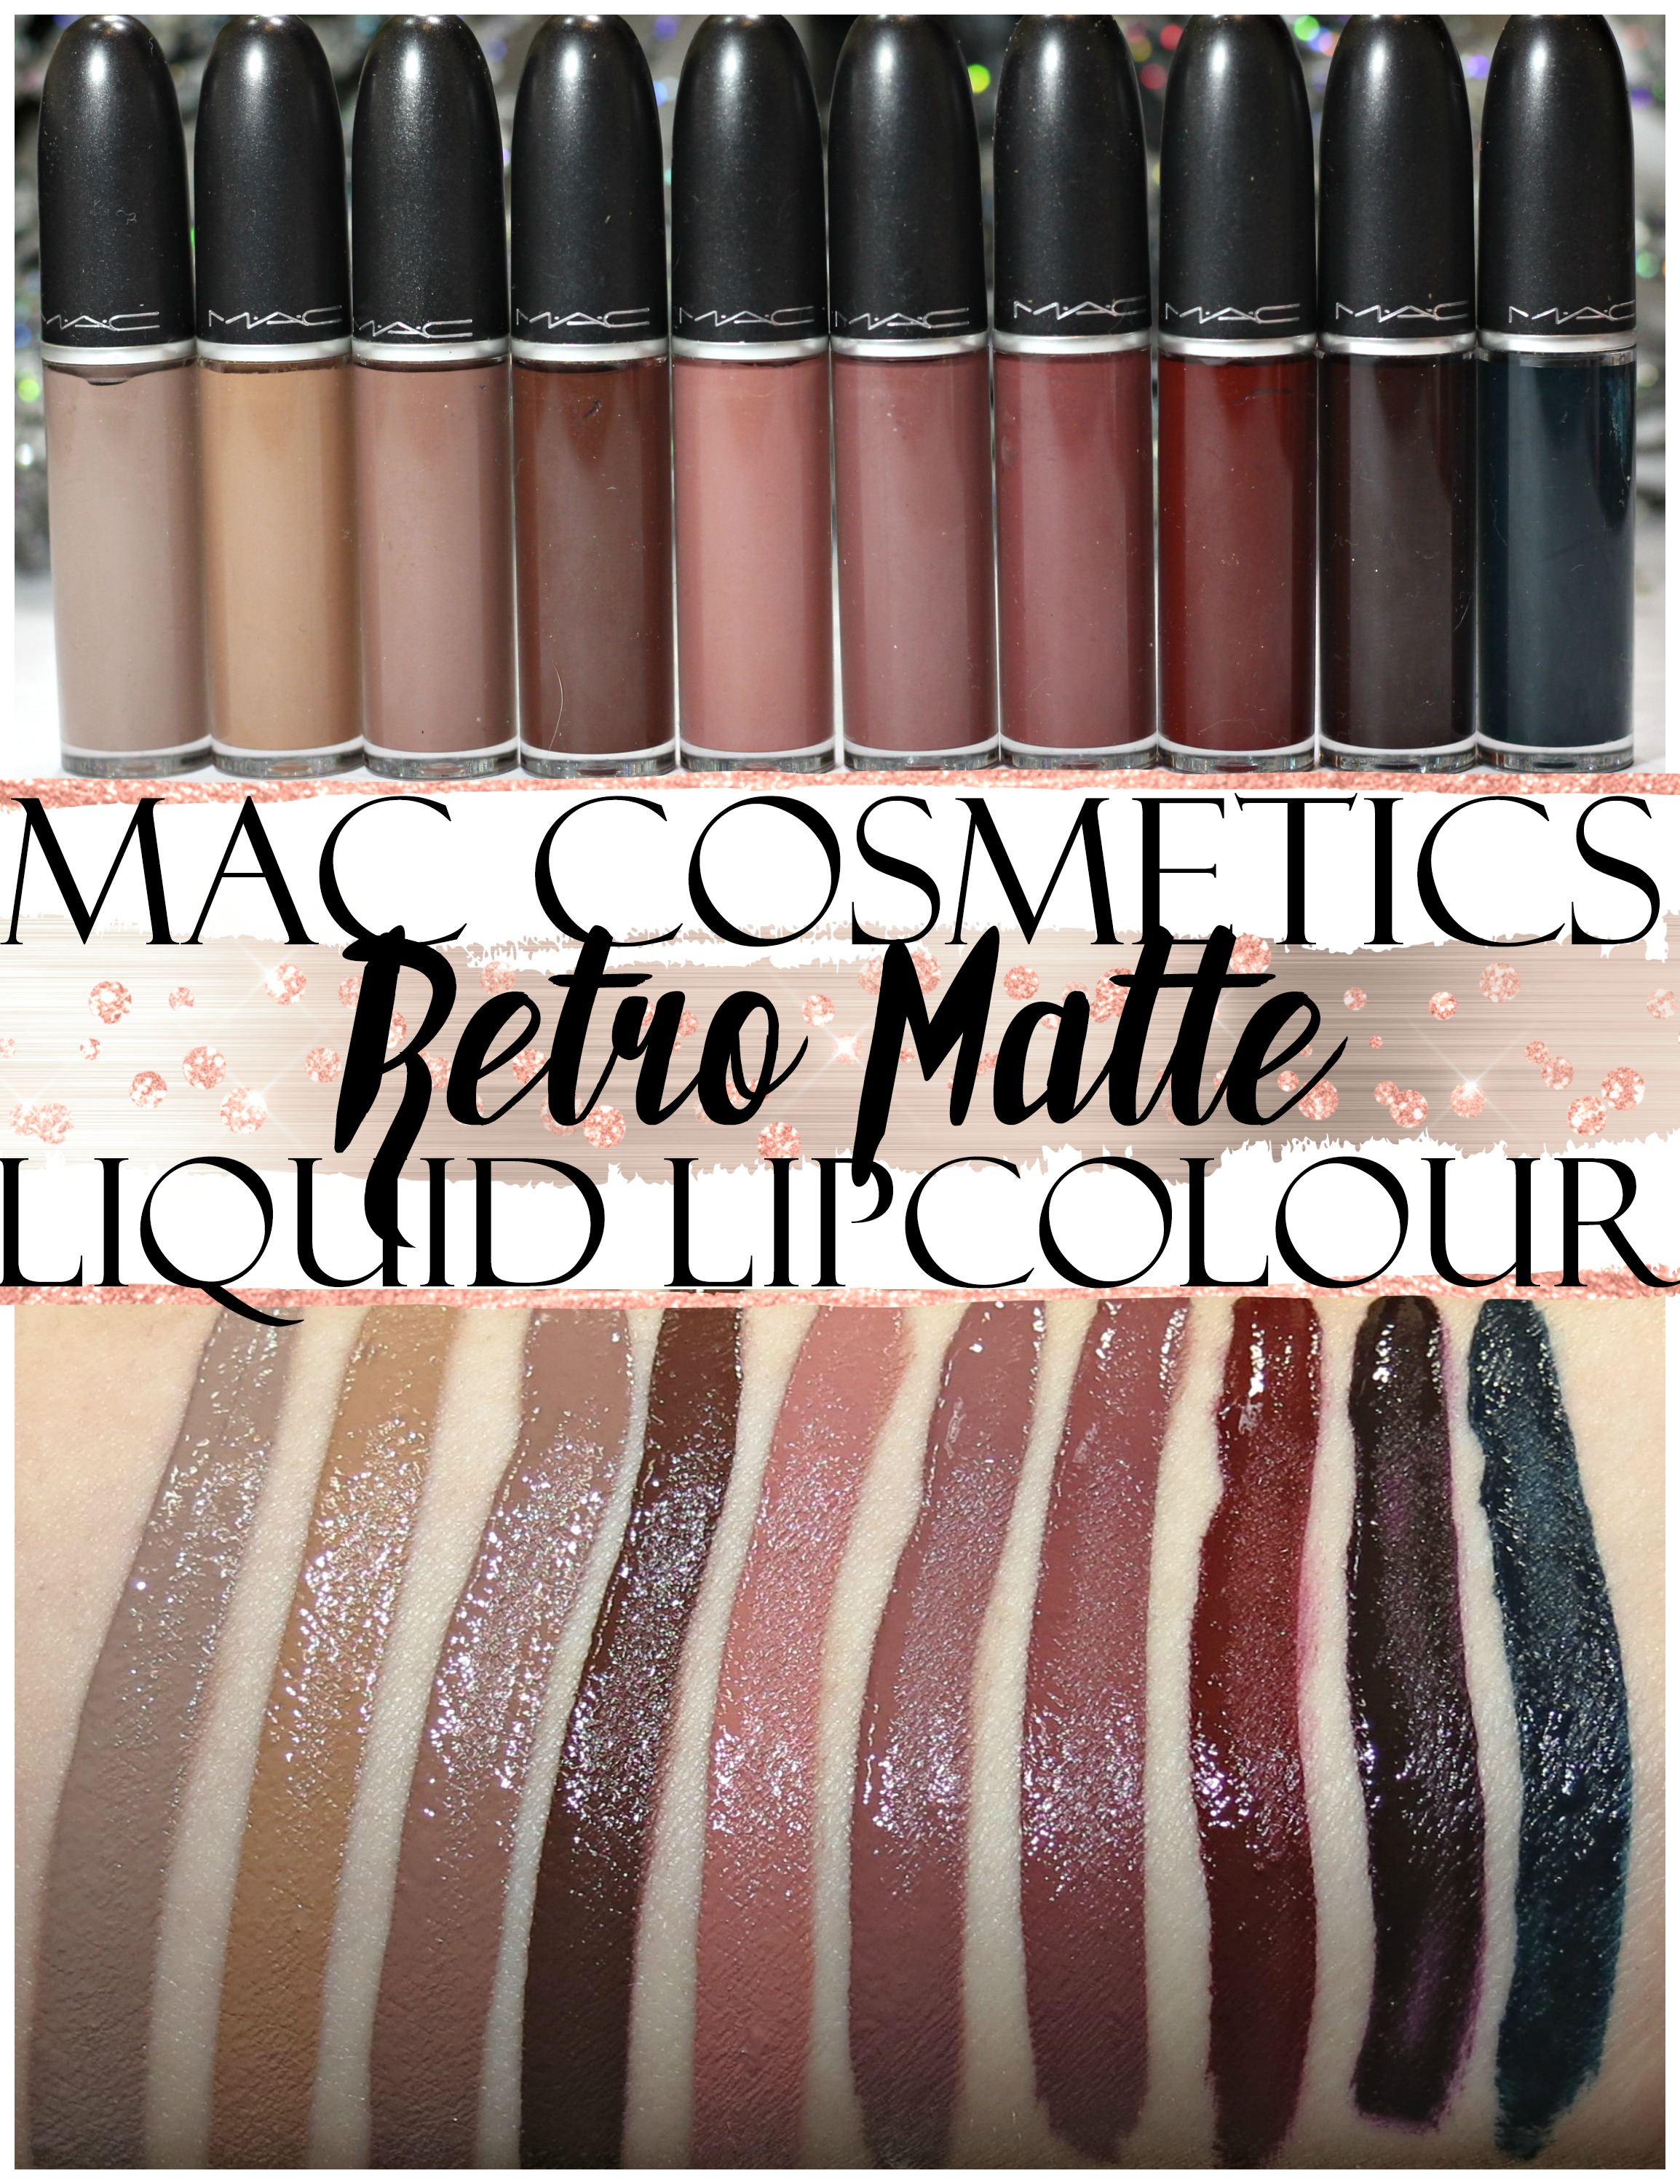 MAC Retro Matte Liquid Lipcolor Swatches L-R: Flesh Stone